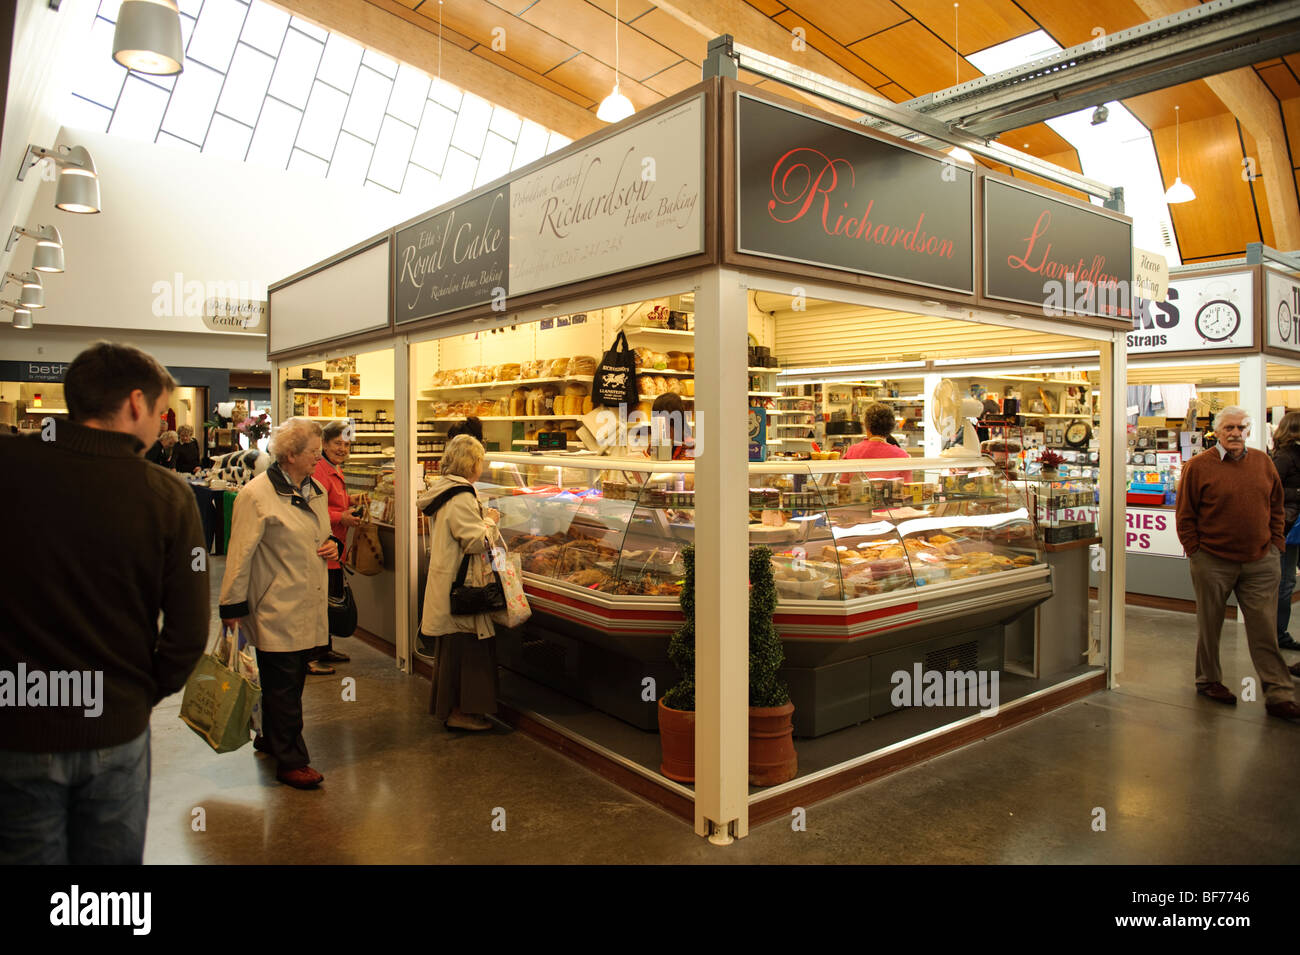 Stalls and shoppers inside the new Carmarthen indoor market, Wales UK, 2009 - Stock Image